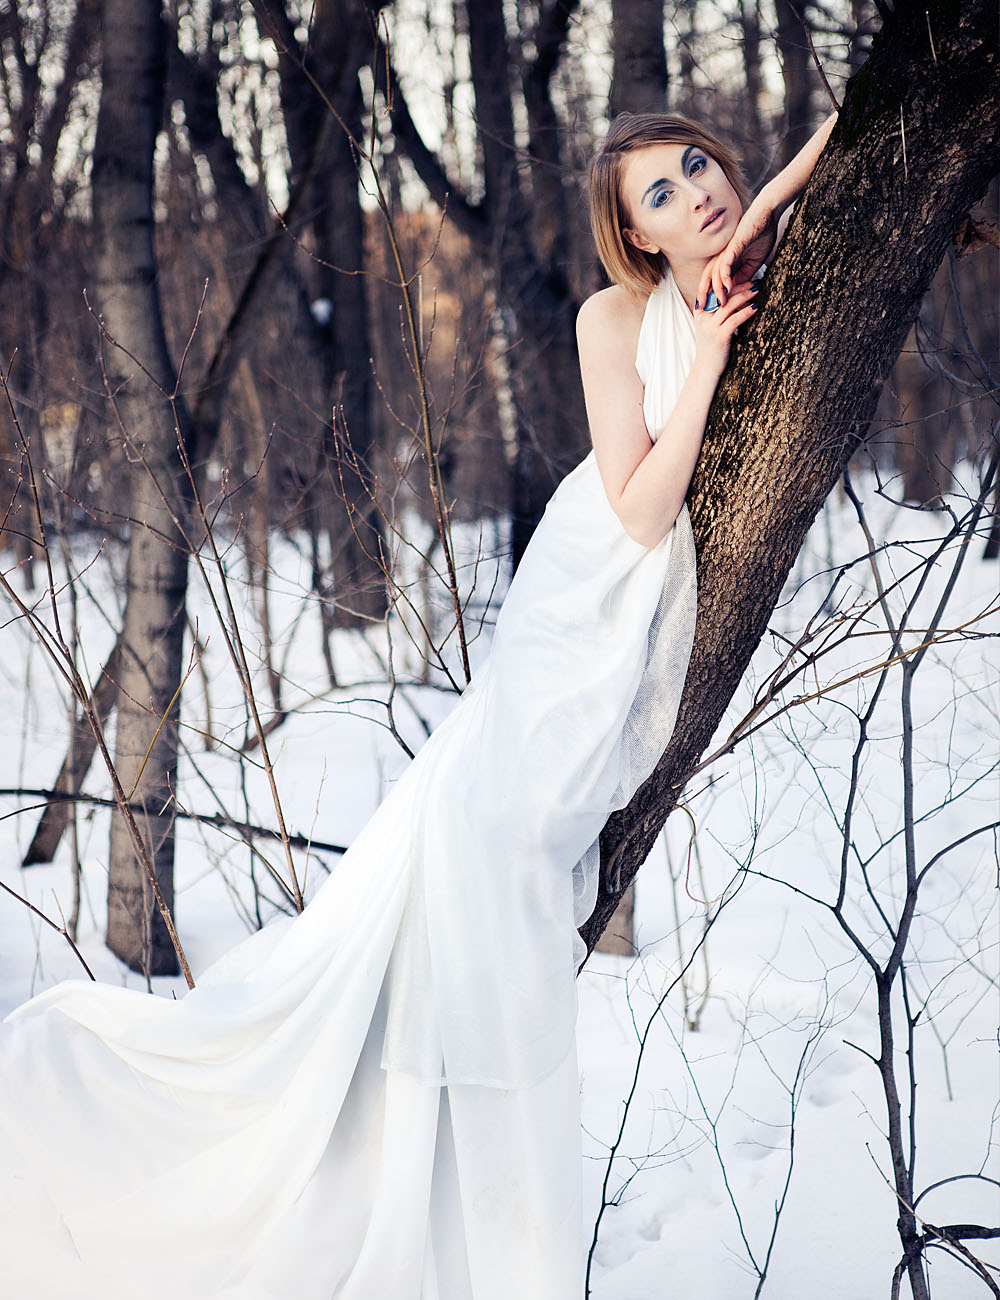 winter-photoshoot-photo-retouching-sample